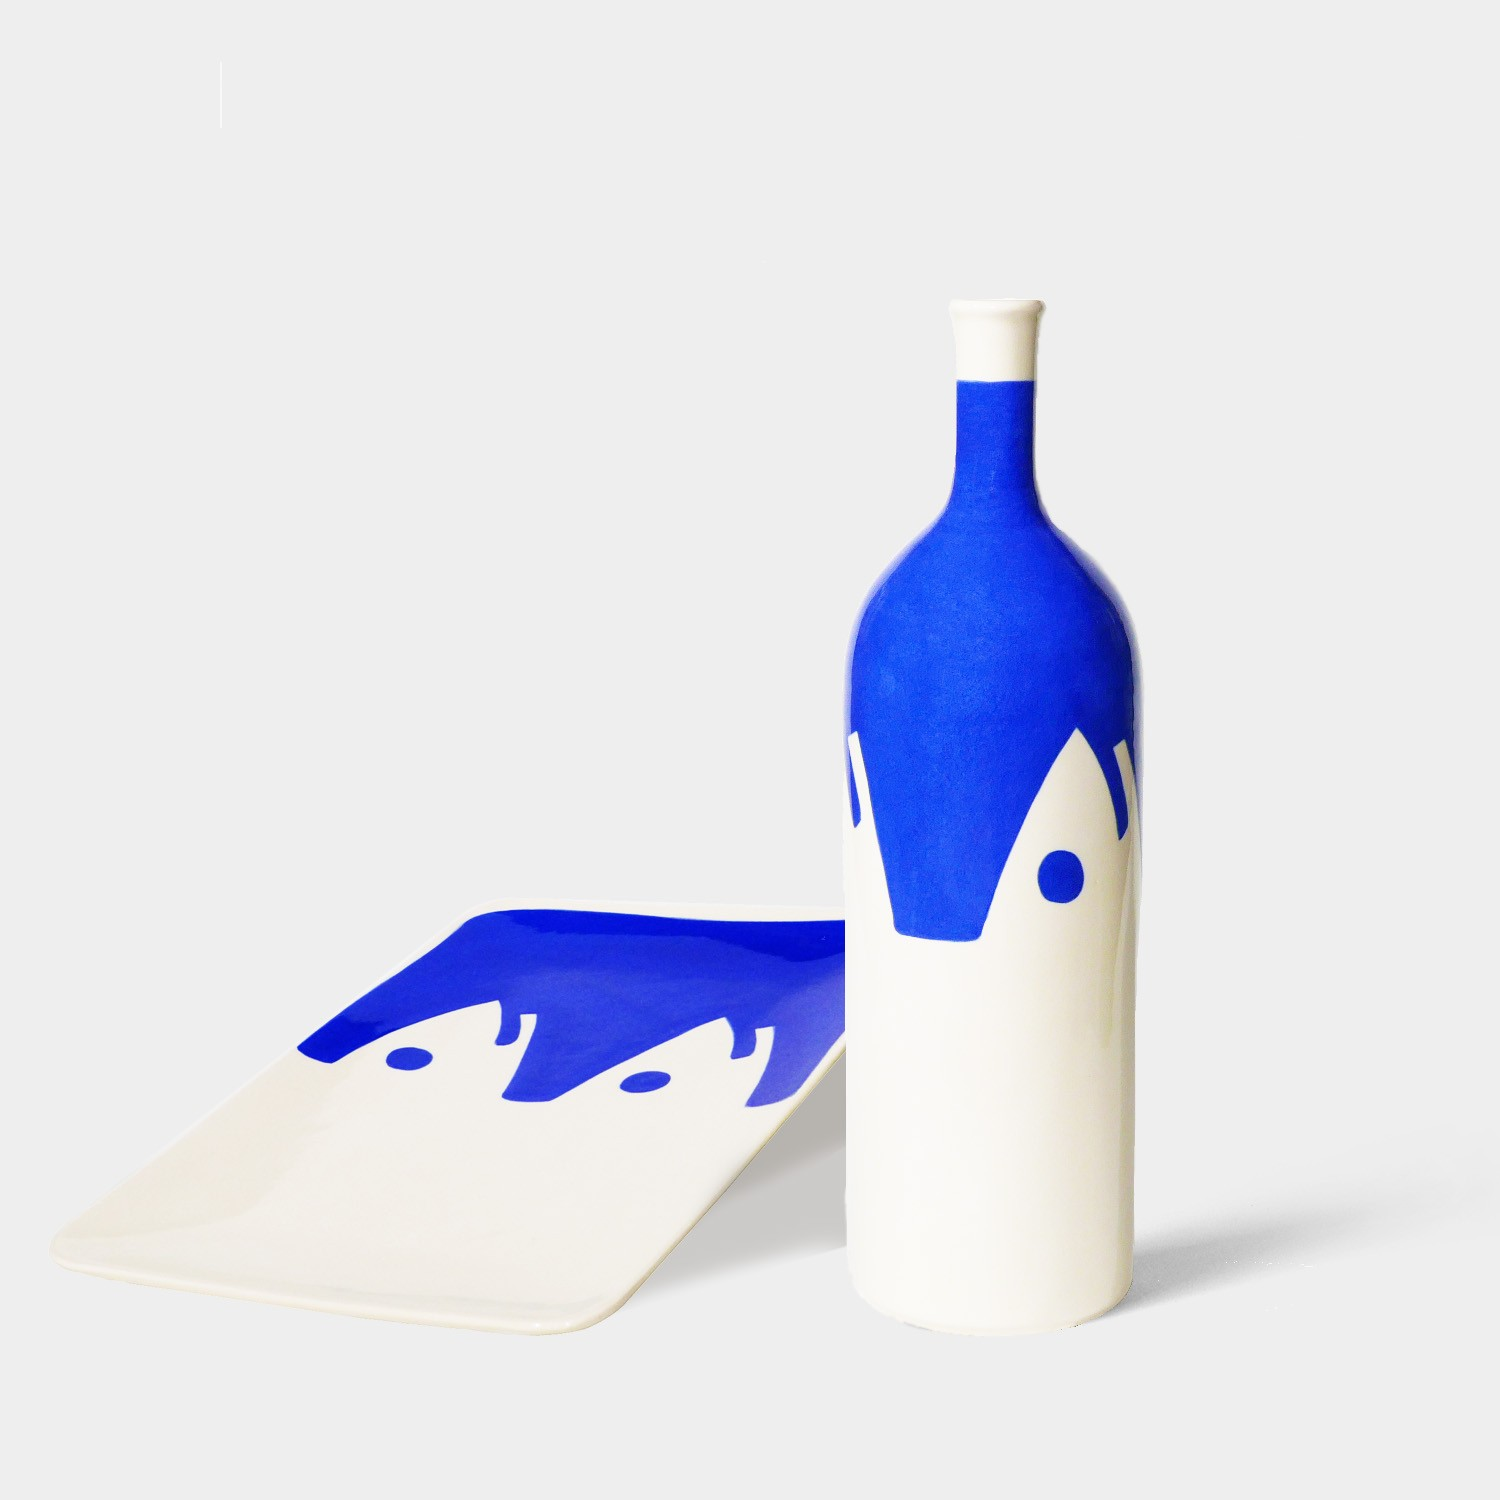 Handmade Ceramic Bottle and Tray, Blue